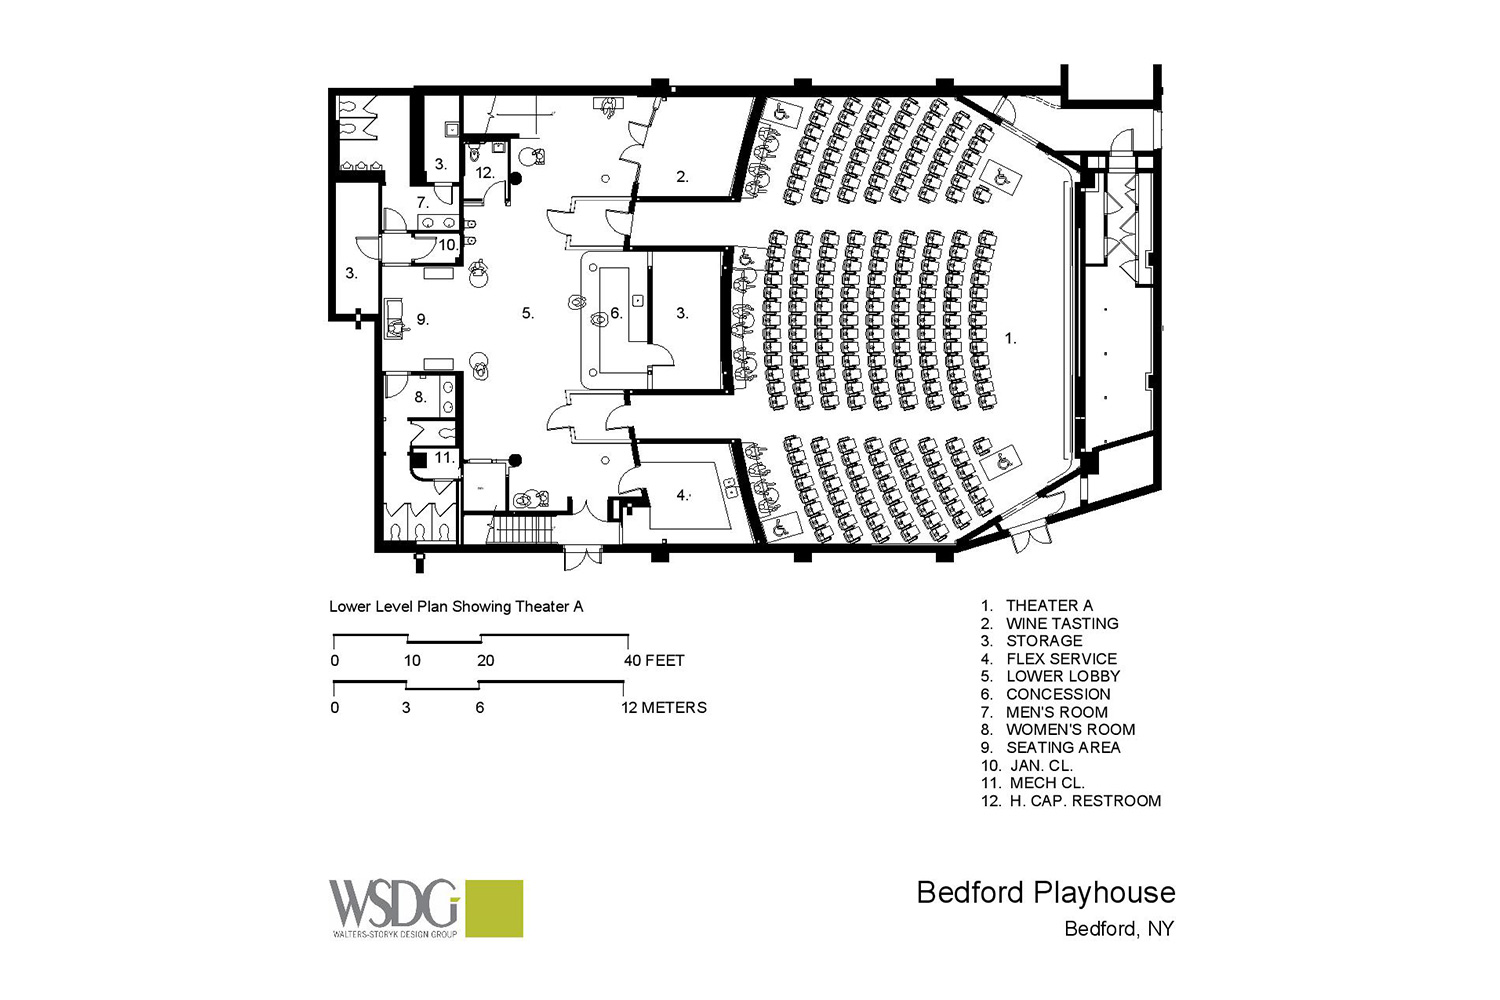 The Bedford Playhouse/Clive Davis Arts Center is a classic movie theater in the final stages of a total renovation. WSDG is providing complete acoustic and A/V design and consultation for the complex. Presentation Drawing 1